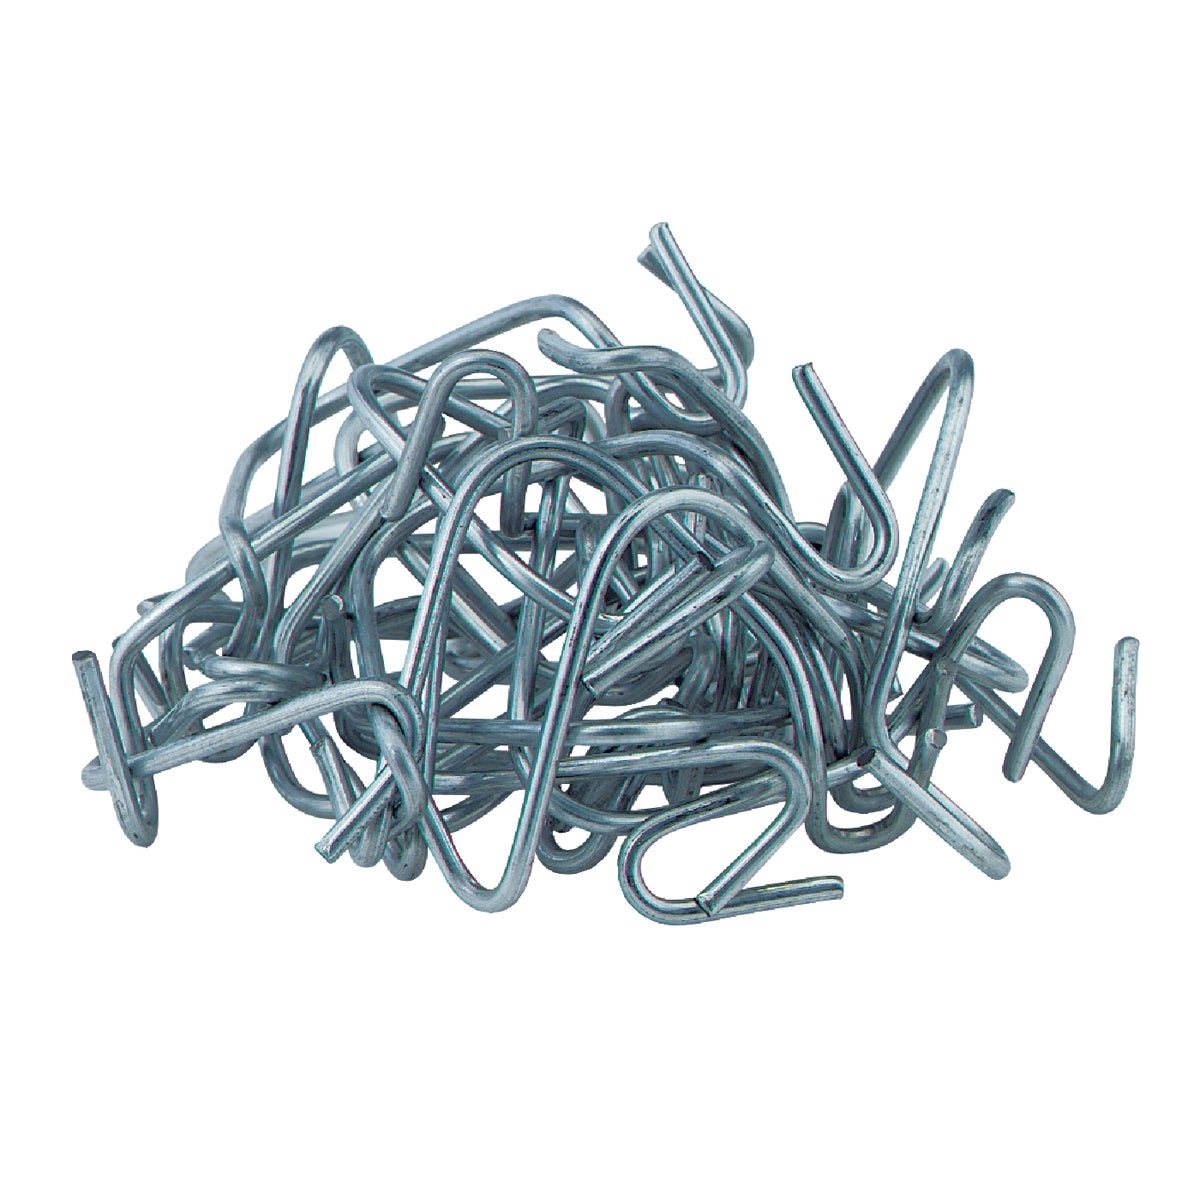 25PC T-POST CLIPS